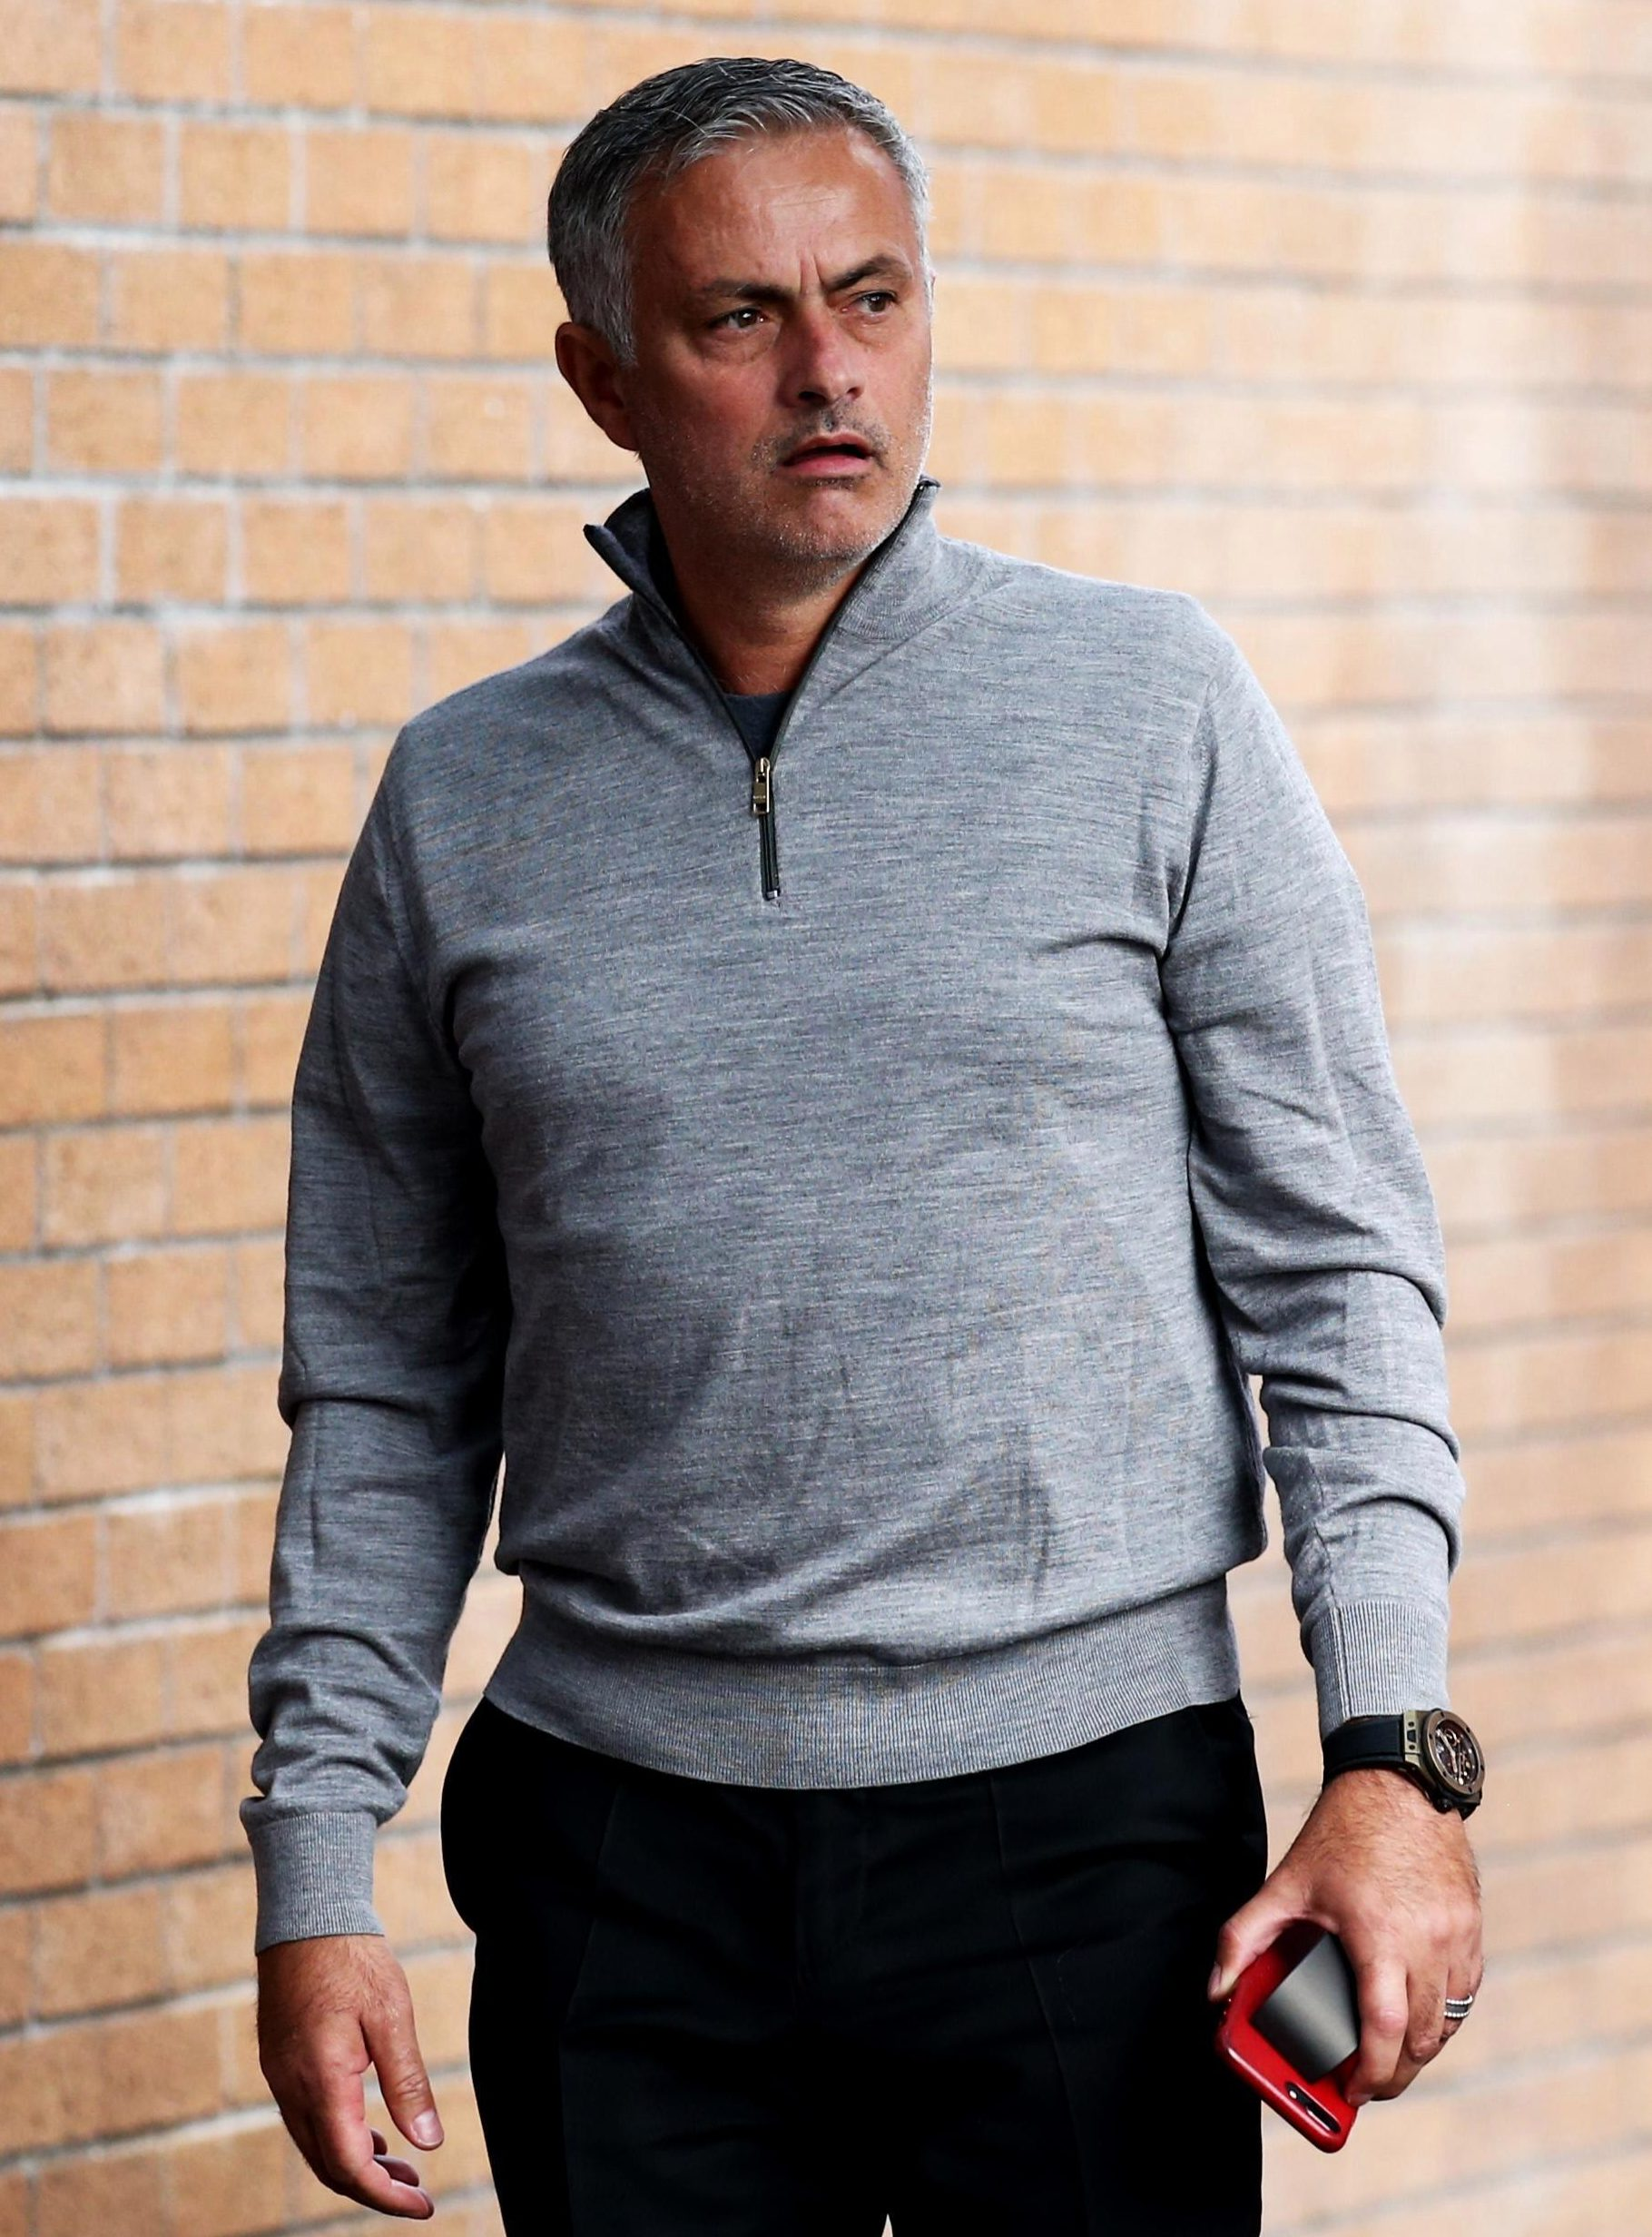 Jose Mourinho was delighted with the win and dedicated it to Ed Woodward